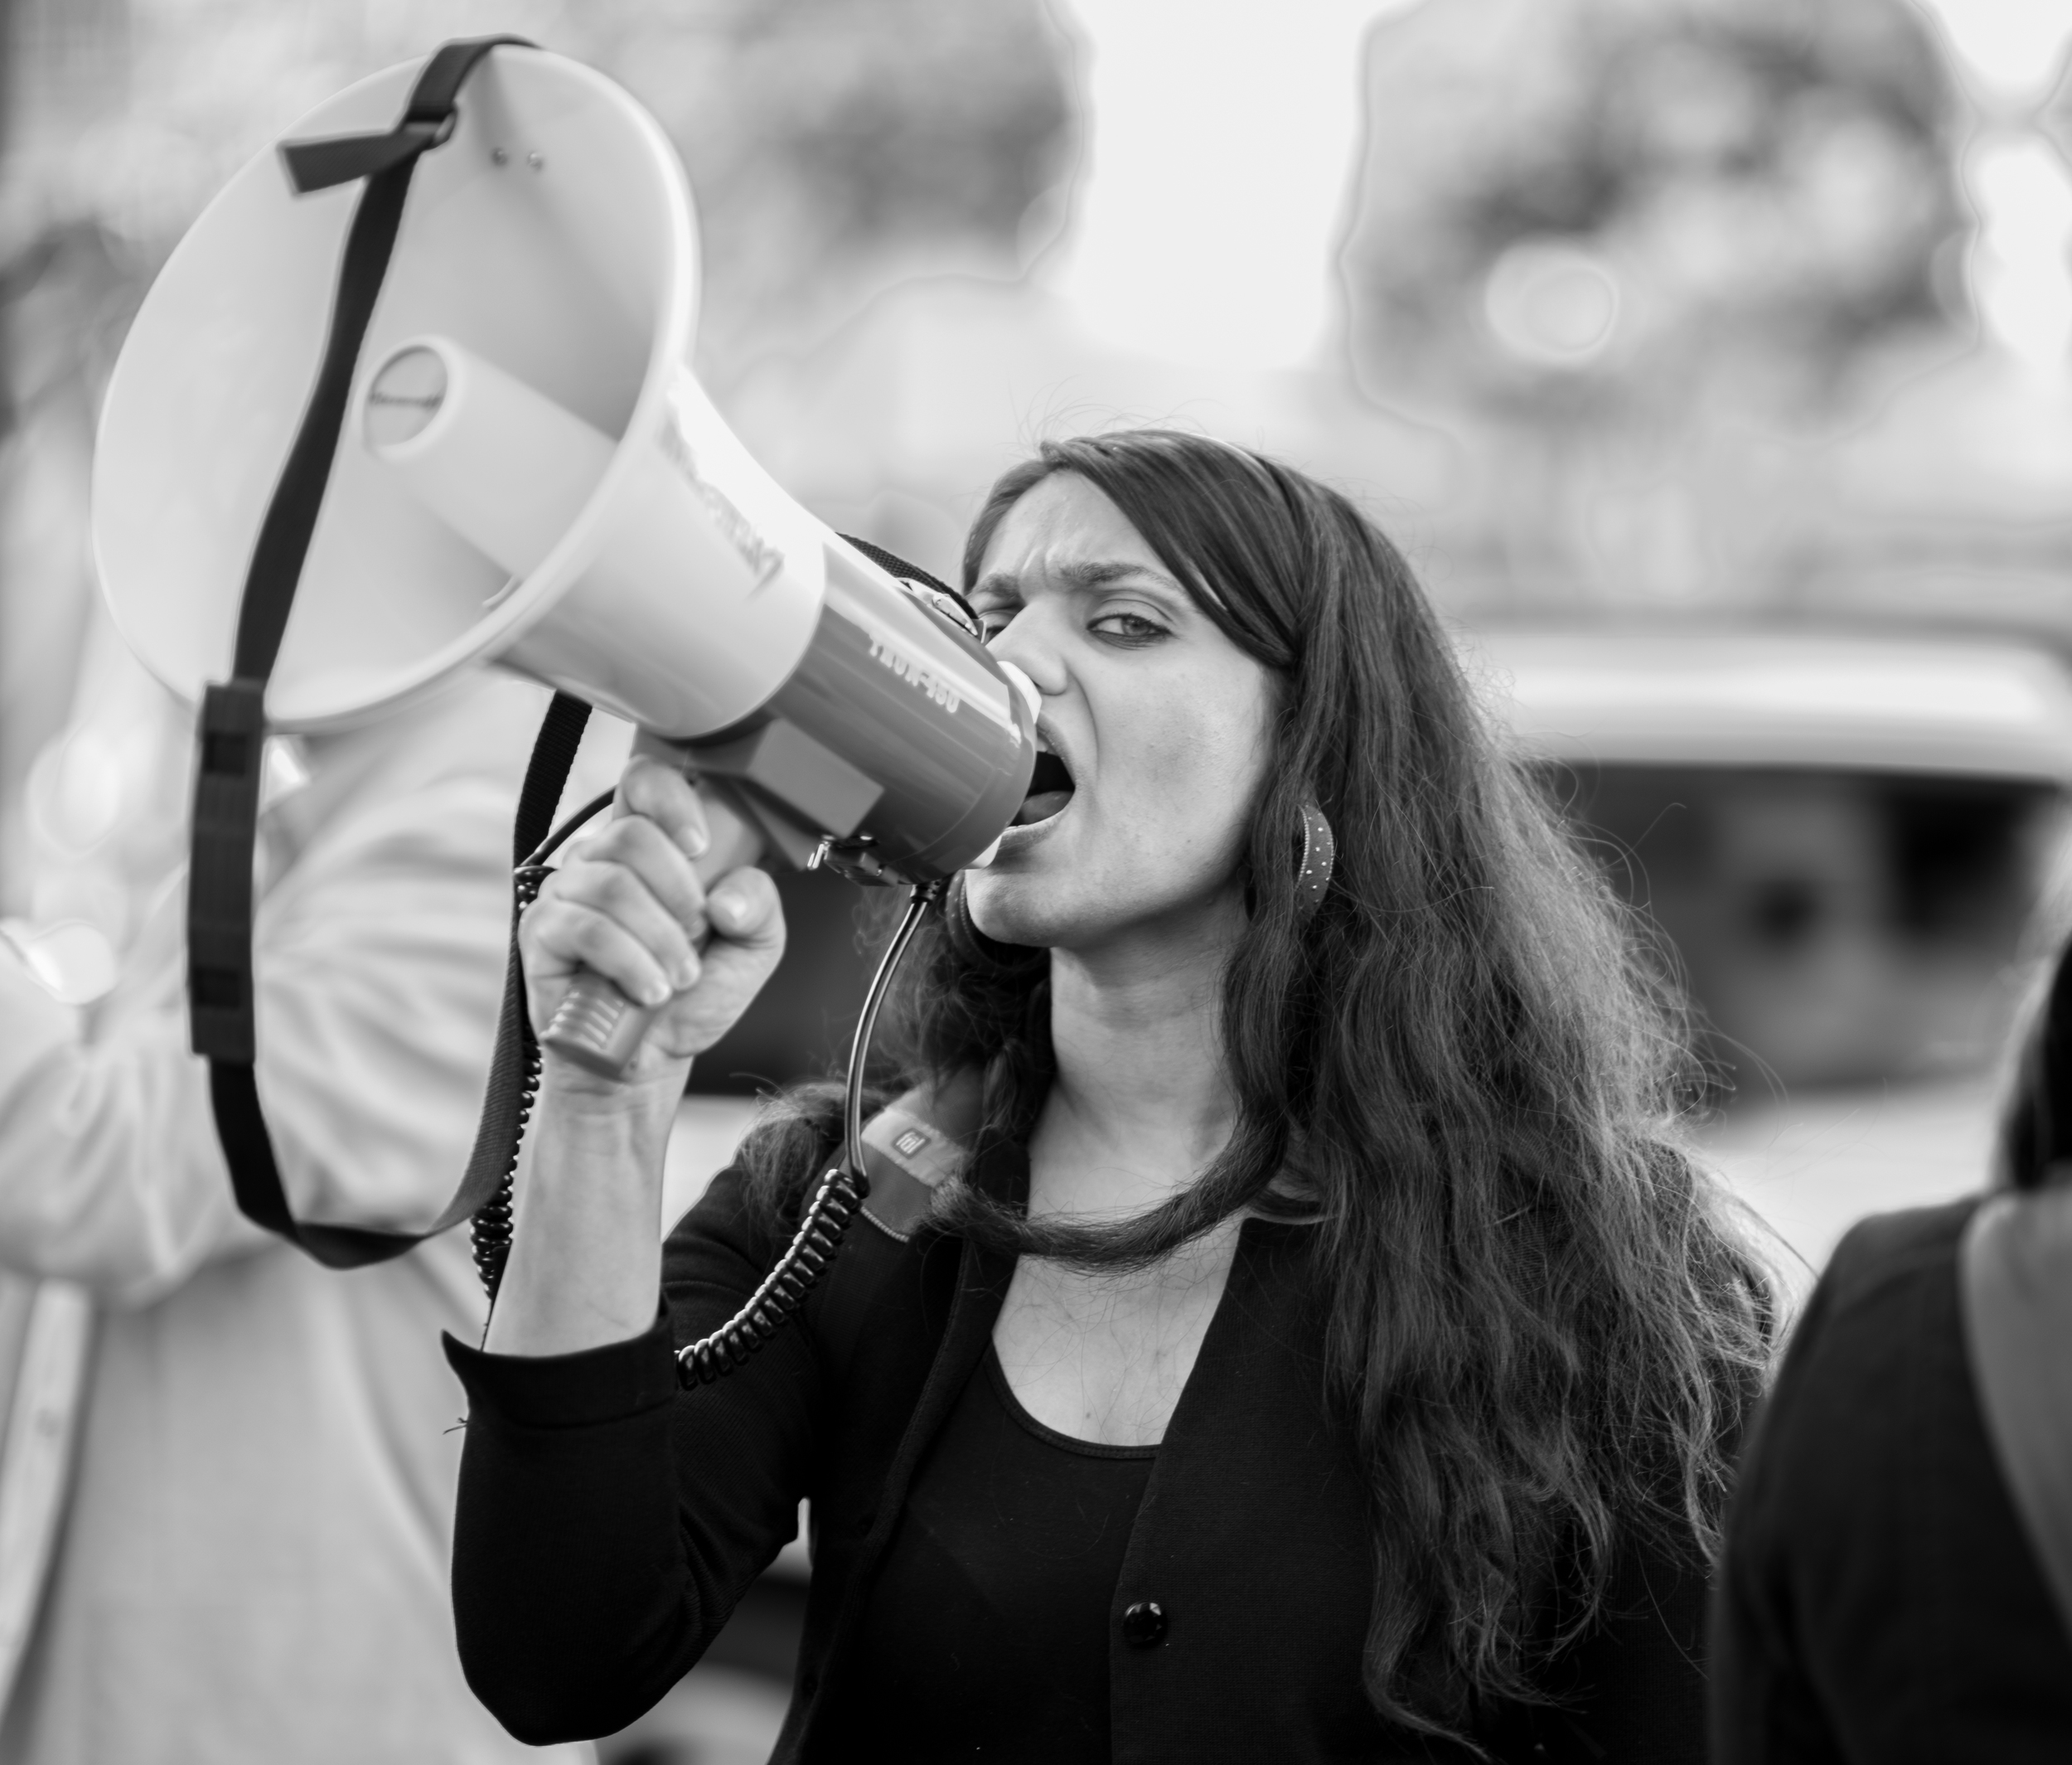 DxE organizer Priya Sawhney speaking out at the Whole Foods demonstration on January 11, 2015.